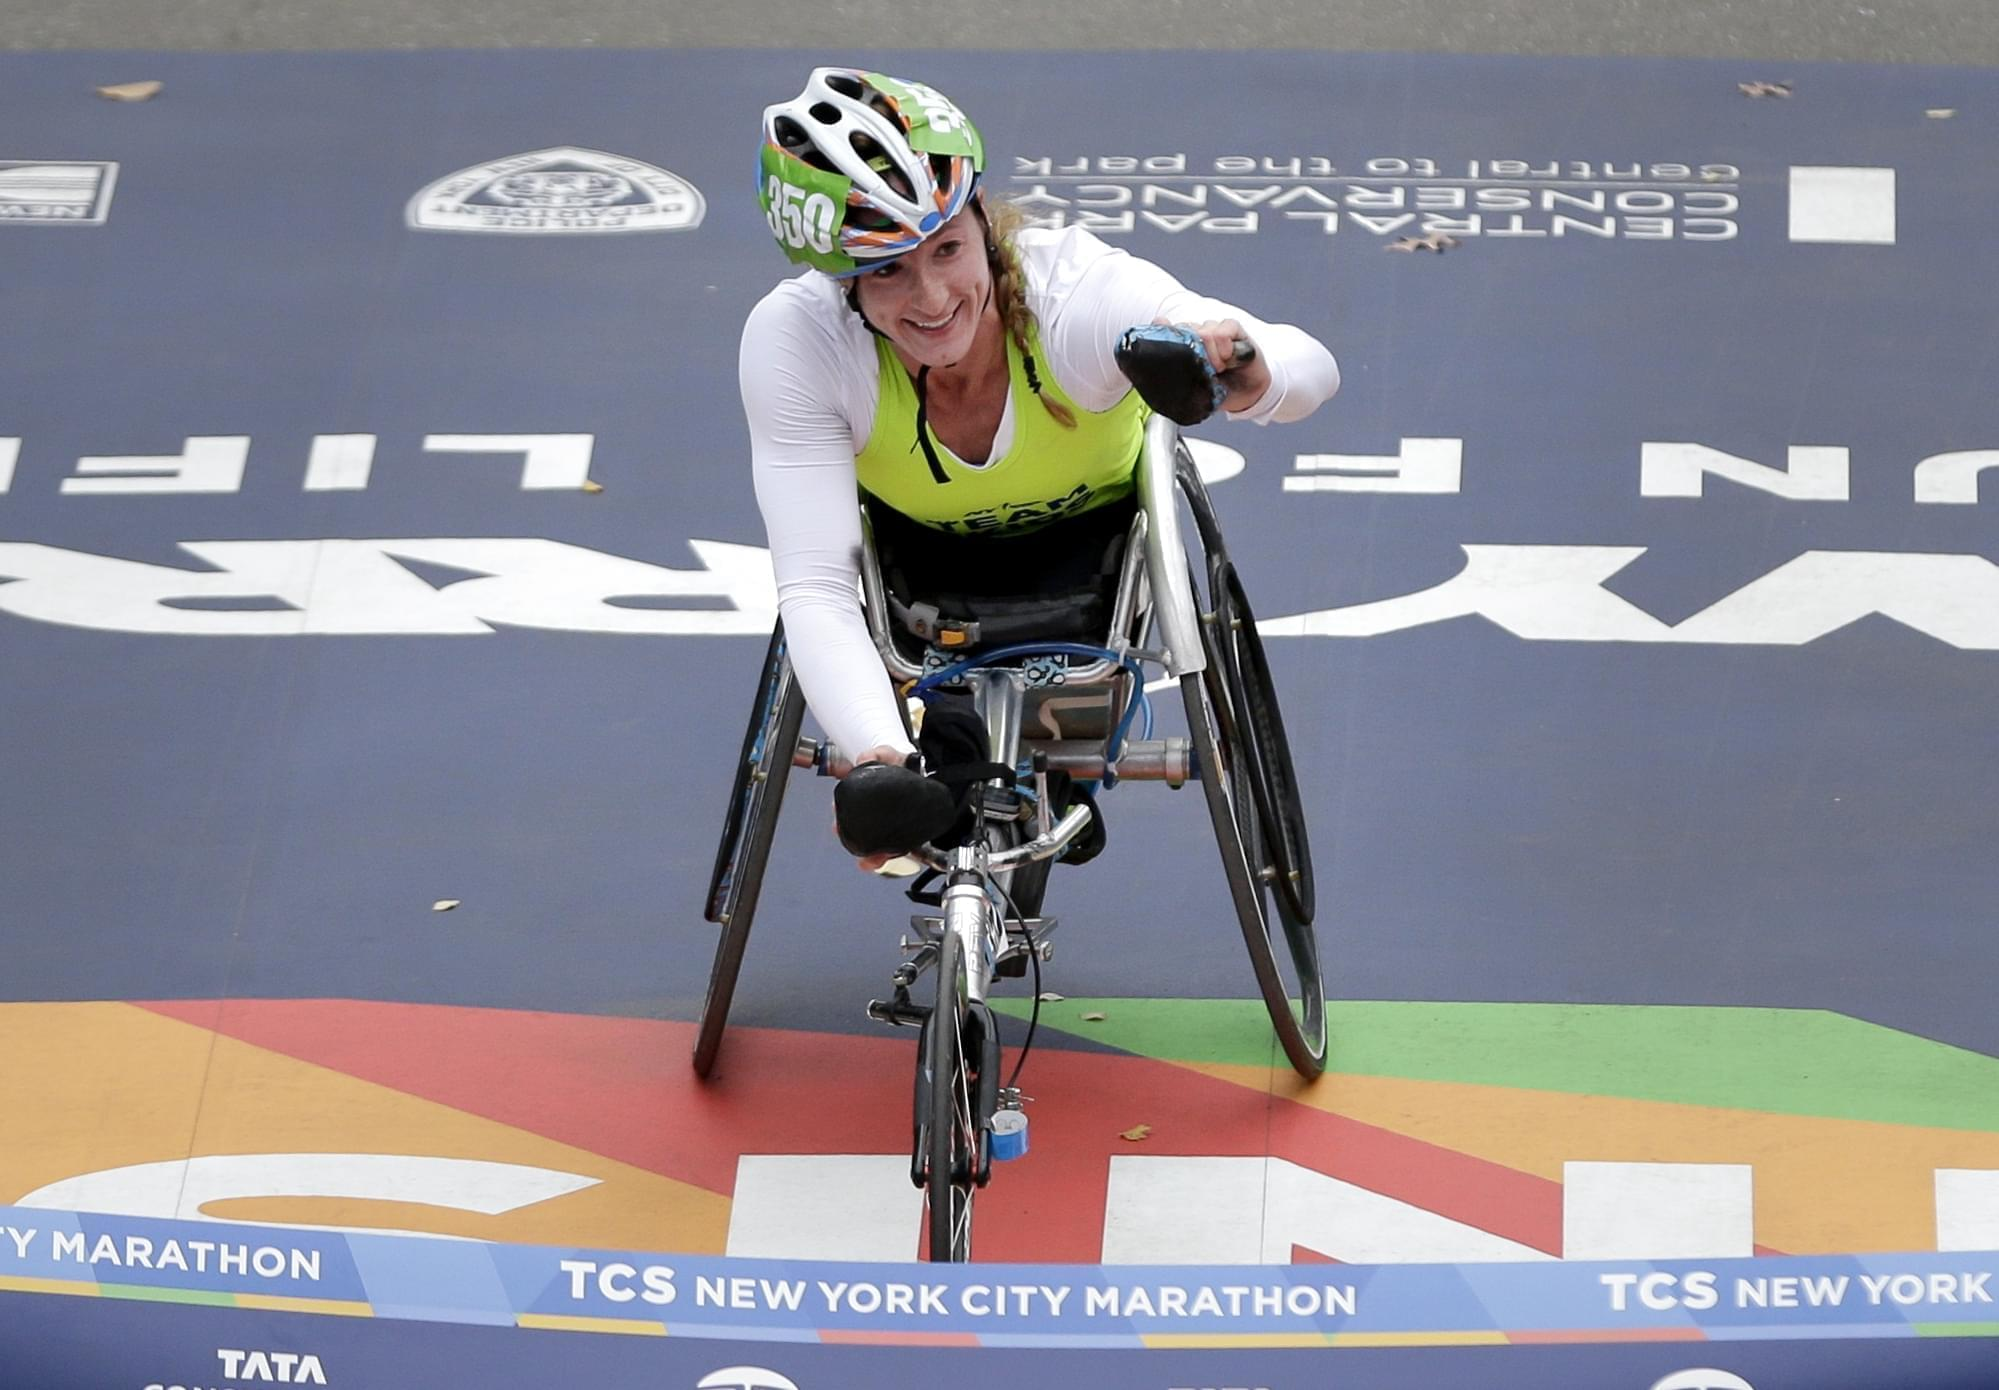 Tatyana McFadden crosses the finish line to win the women's wheelchair division of the New York City Marathon